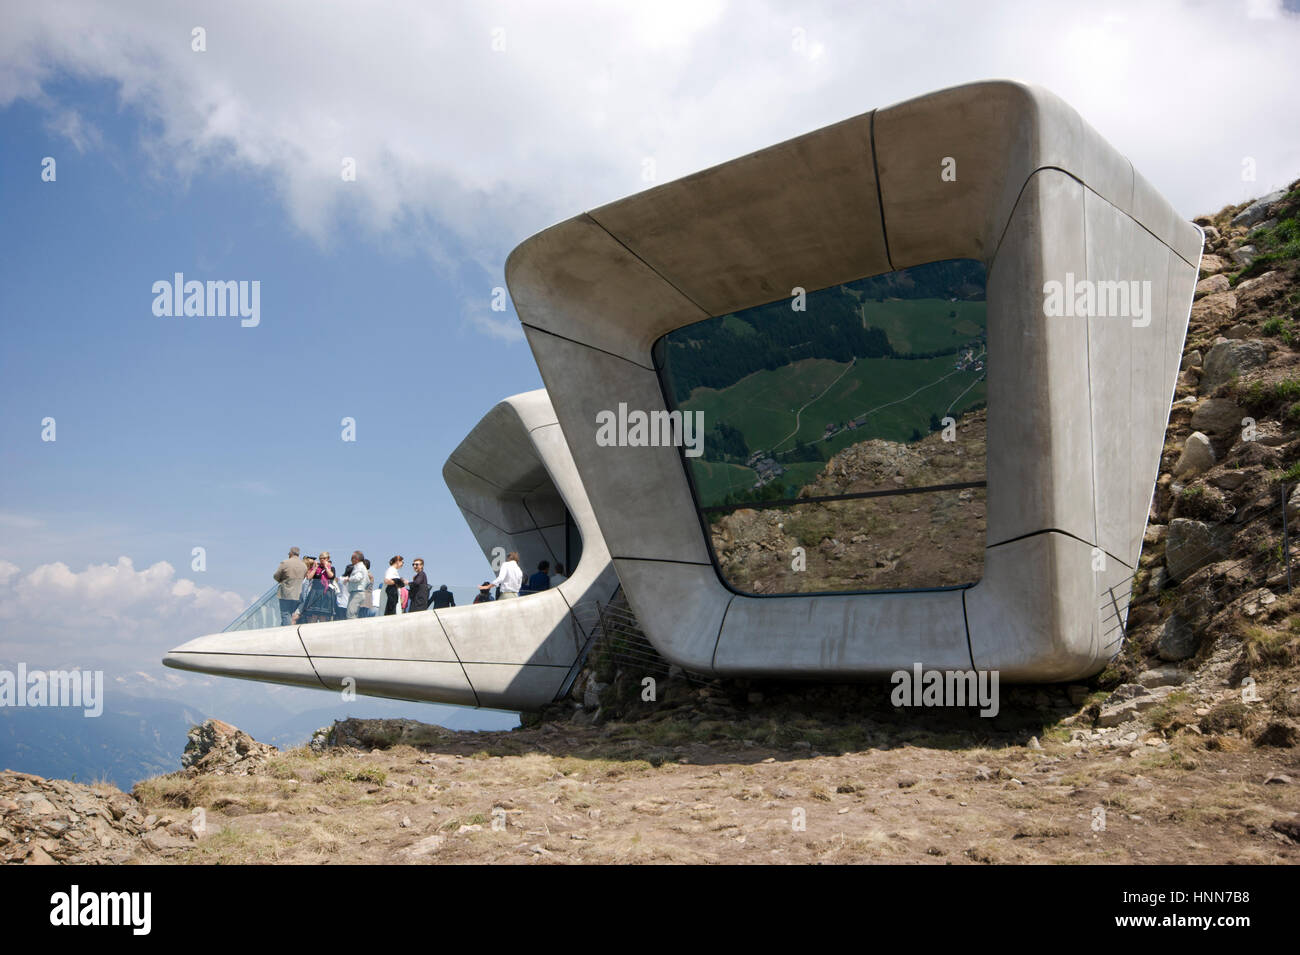 Zaha Hadid Architects Messner Corones Mountain Museum Italy, view of the cantileverd terrace with people Inexhibit - Stock Image